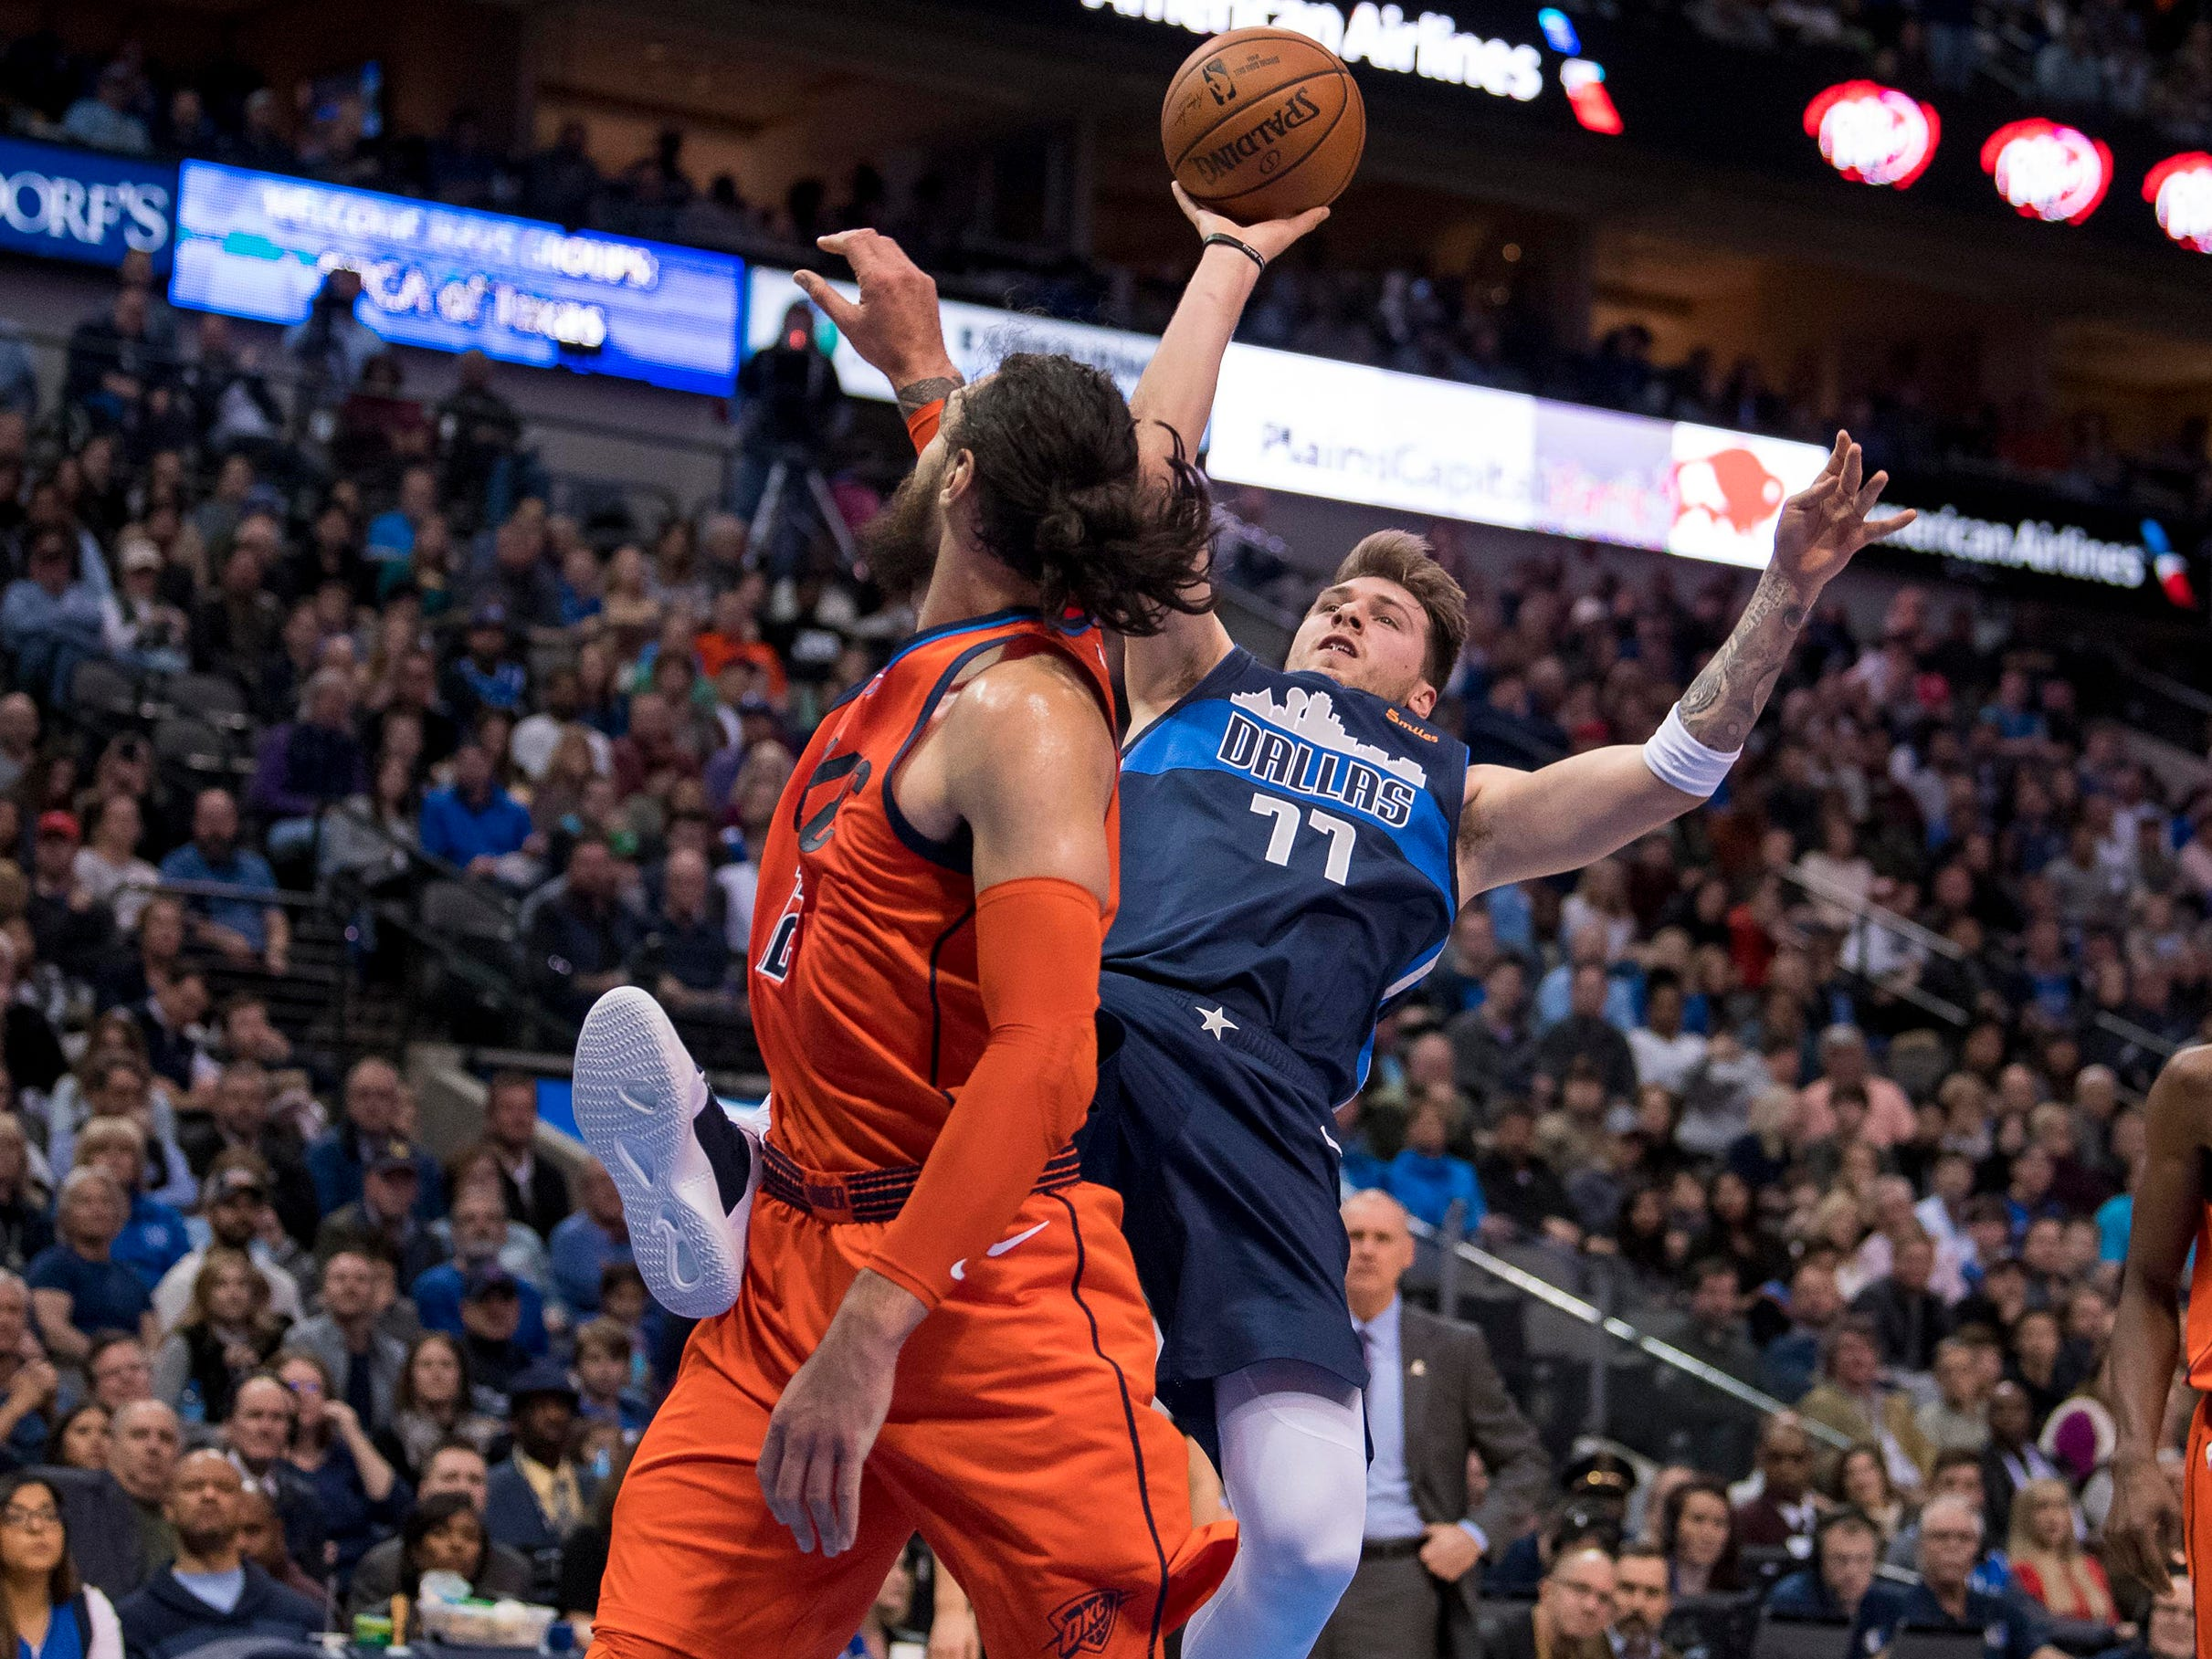 Dec. 30: Mavericks forward Luka Doncic (77) takes the bump and puts up a wild shot over Thunder defender Steven Adams (12) during the first half in Dallas.